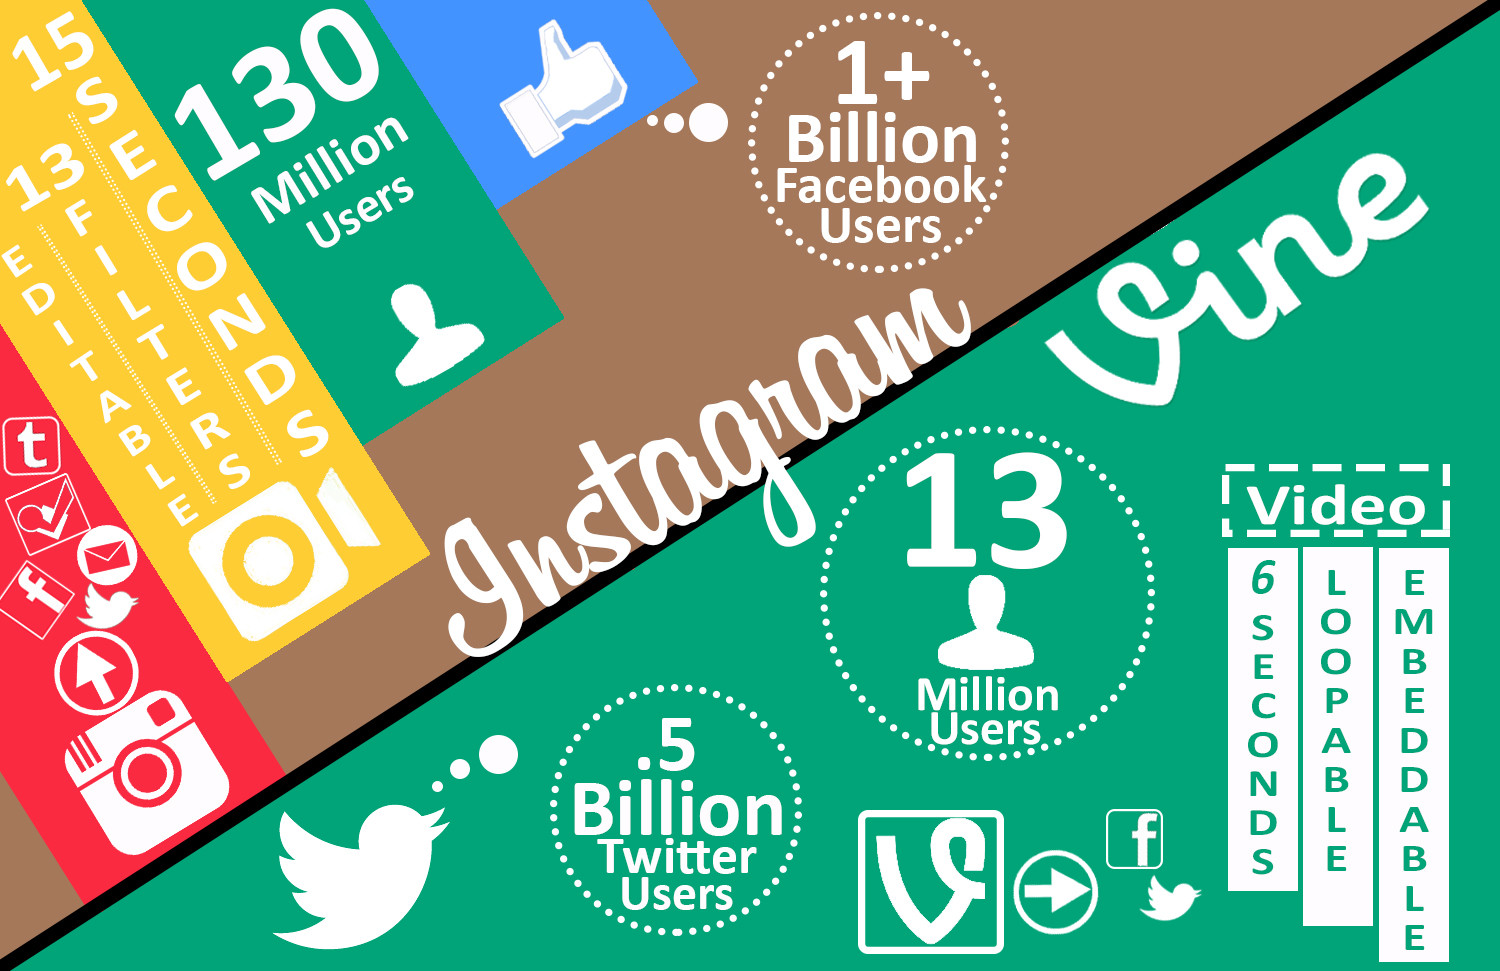 Instagram VS. Vine Infographic